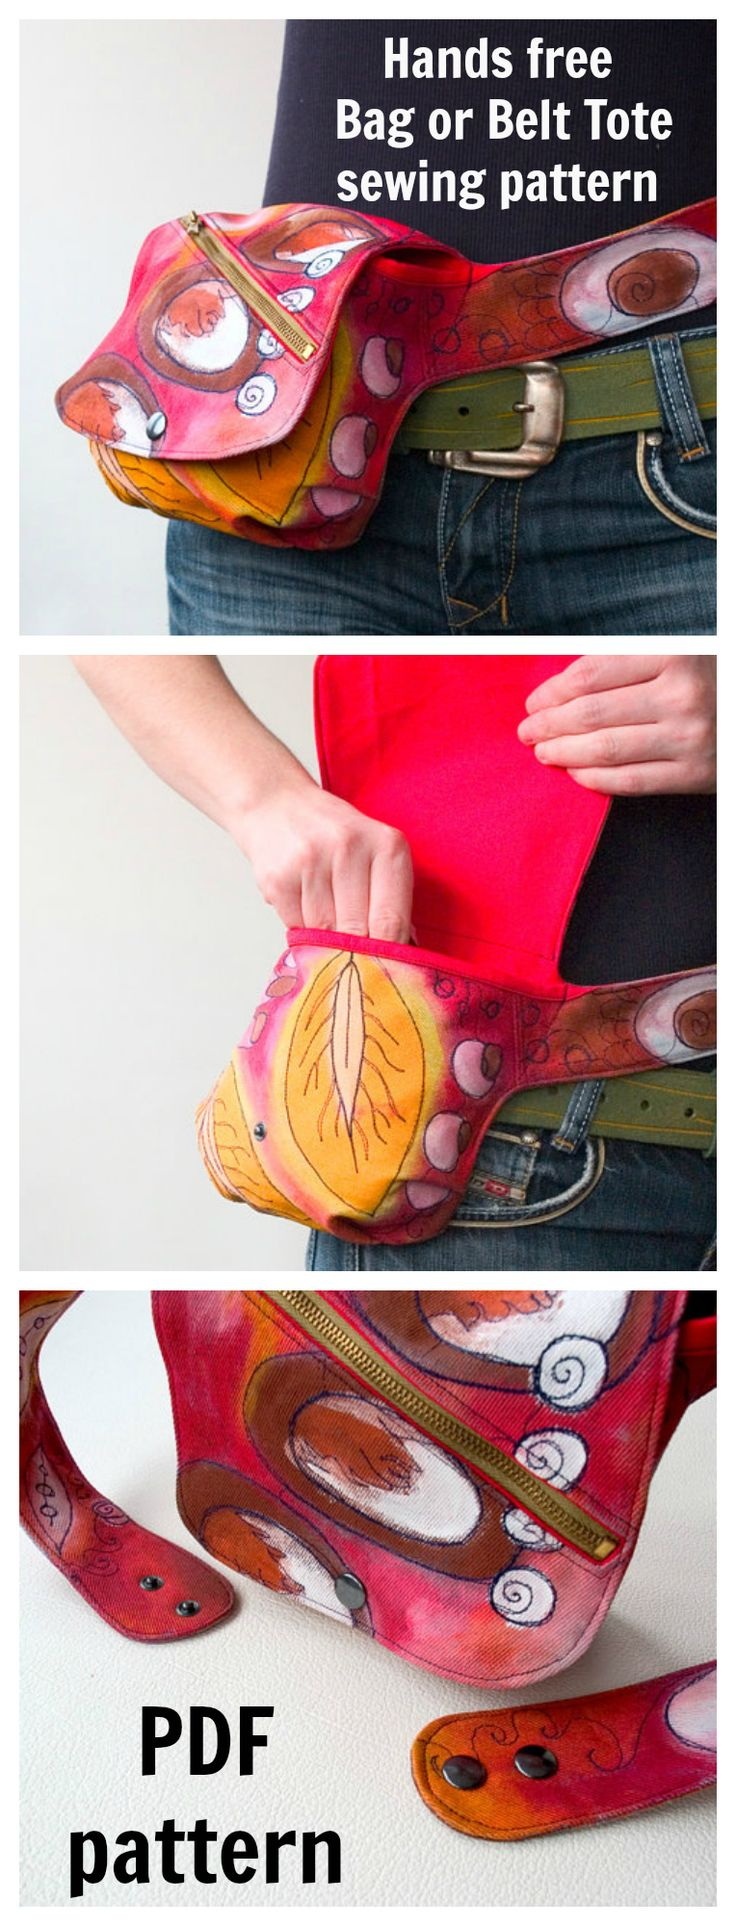 Hands free Bag or Belt Tote pdf sewing pattern